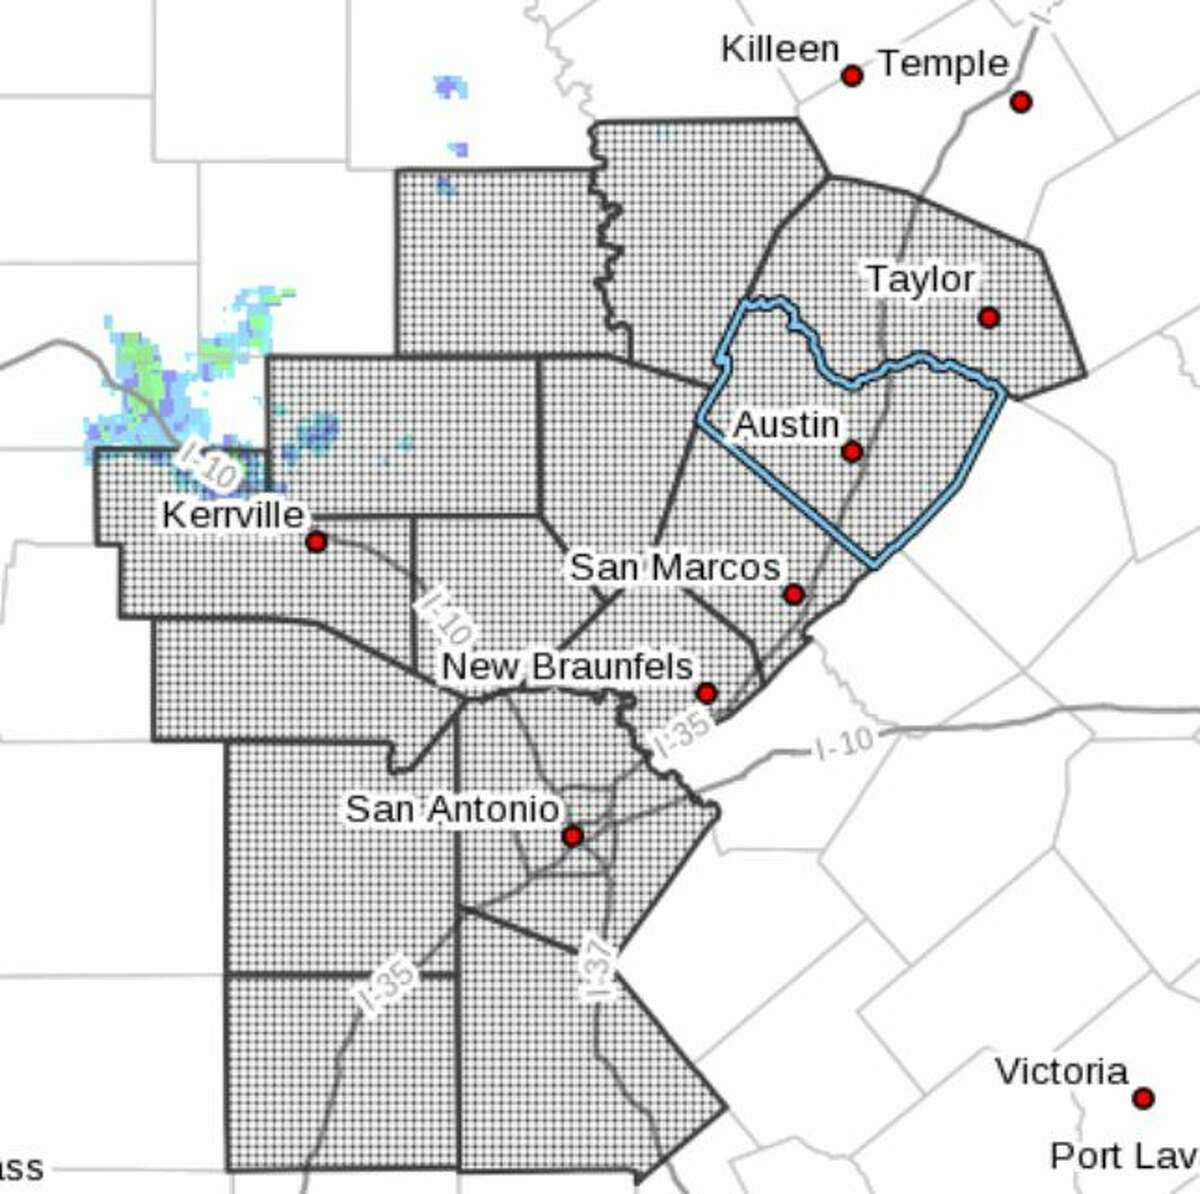 Fog is expected to limit visibility in the area through Saturday morning.